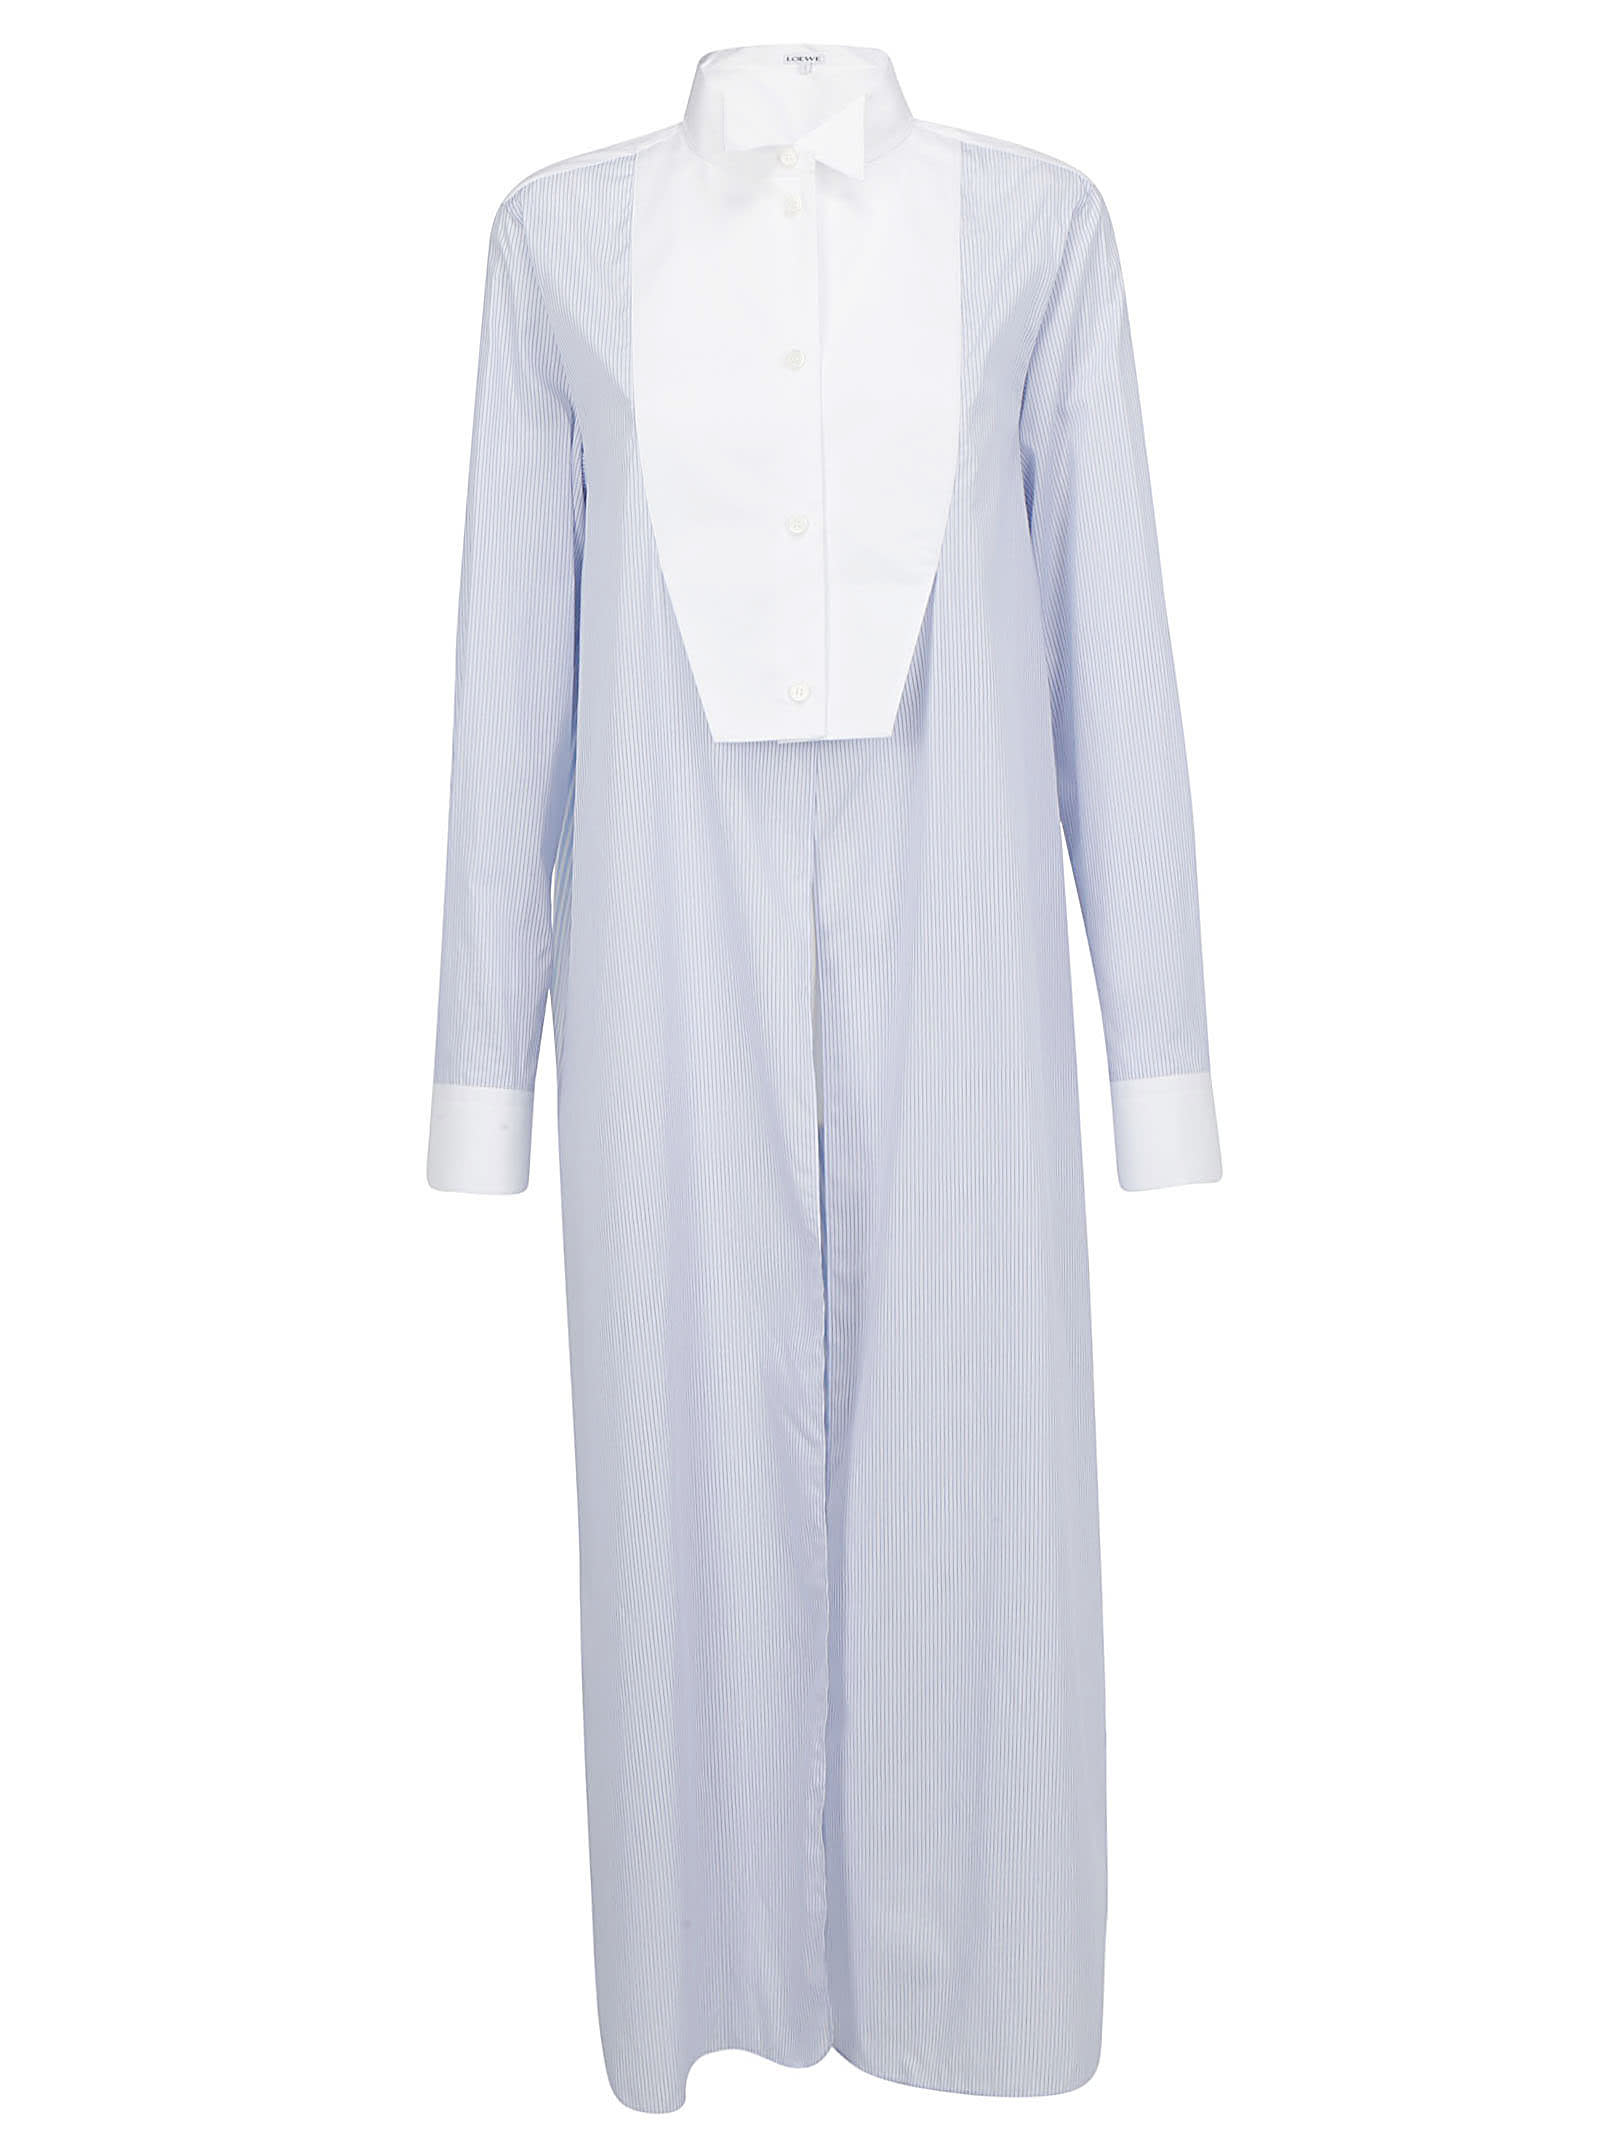 Buy Loewe Shirt Dress online, shop Loewe with free shipping